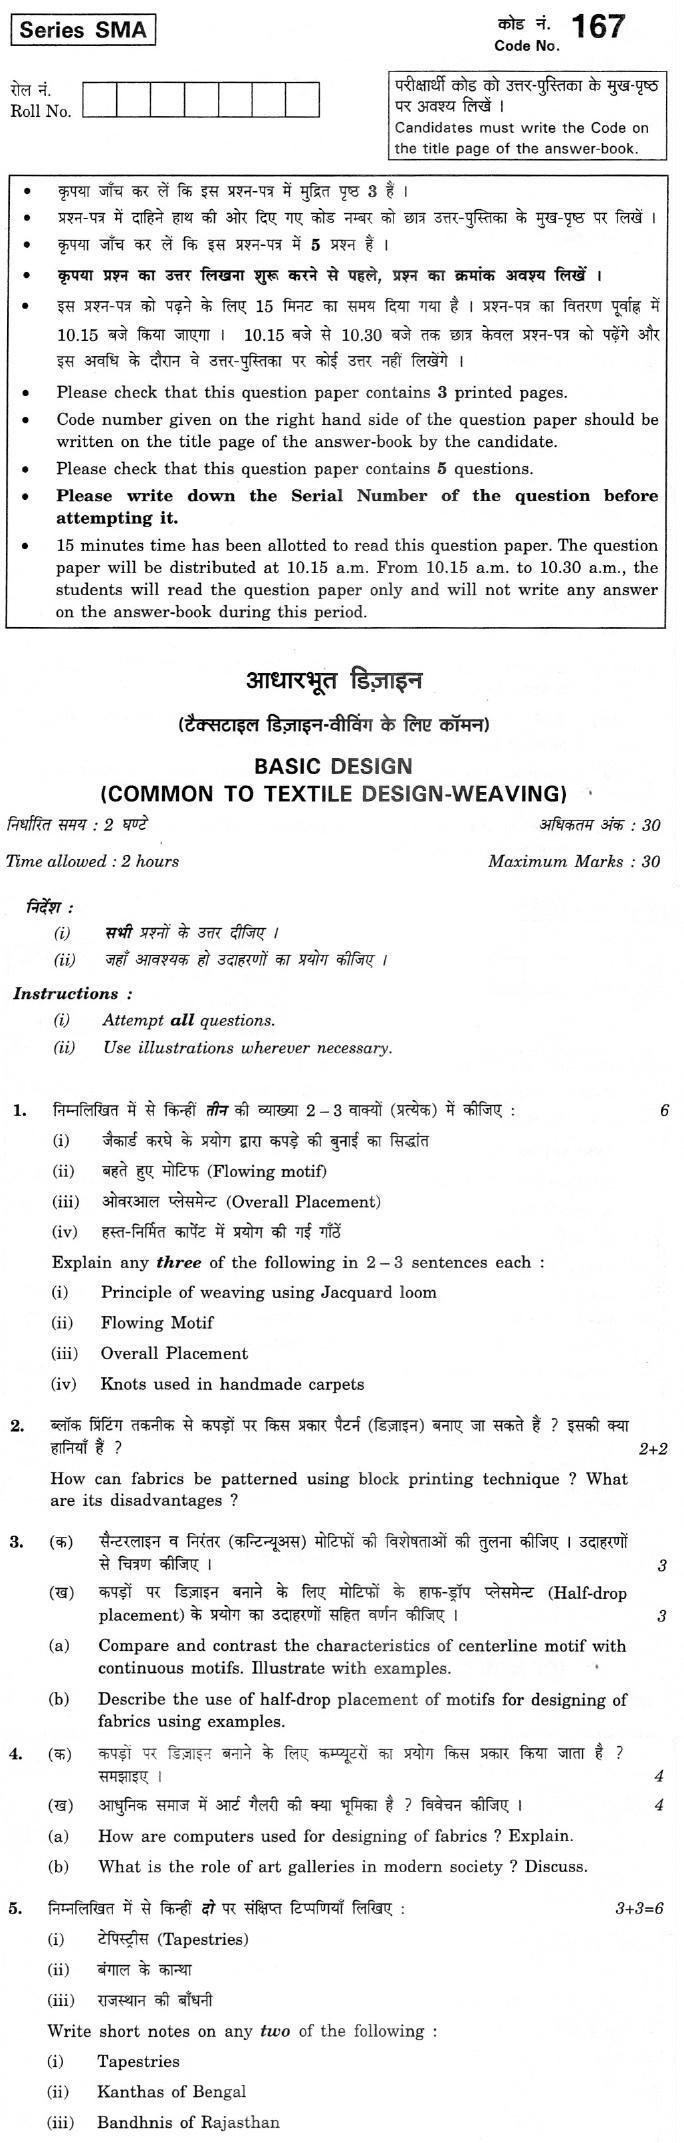 CBSE Class XII Previous Year Question Paper 2012 Basic Design(Common to Textile Design Weaving)